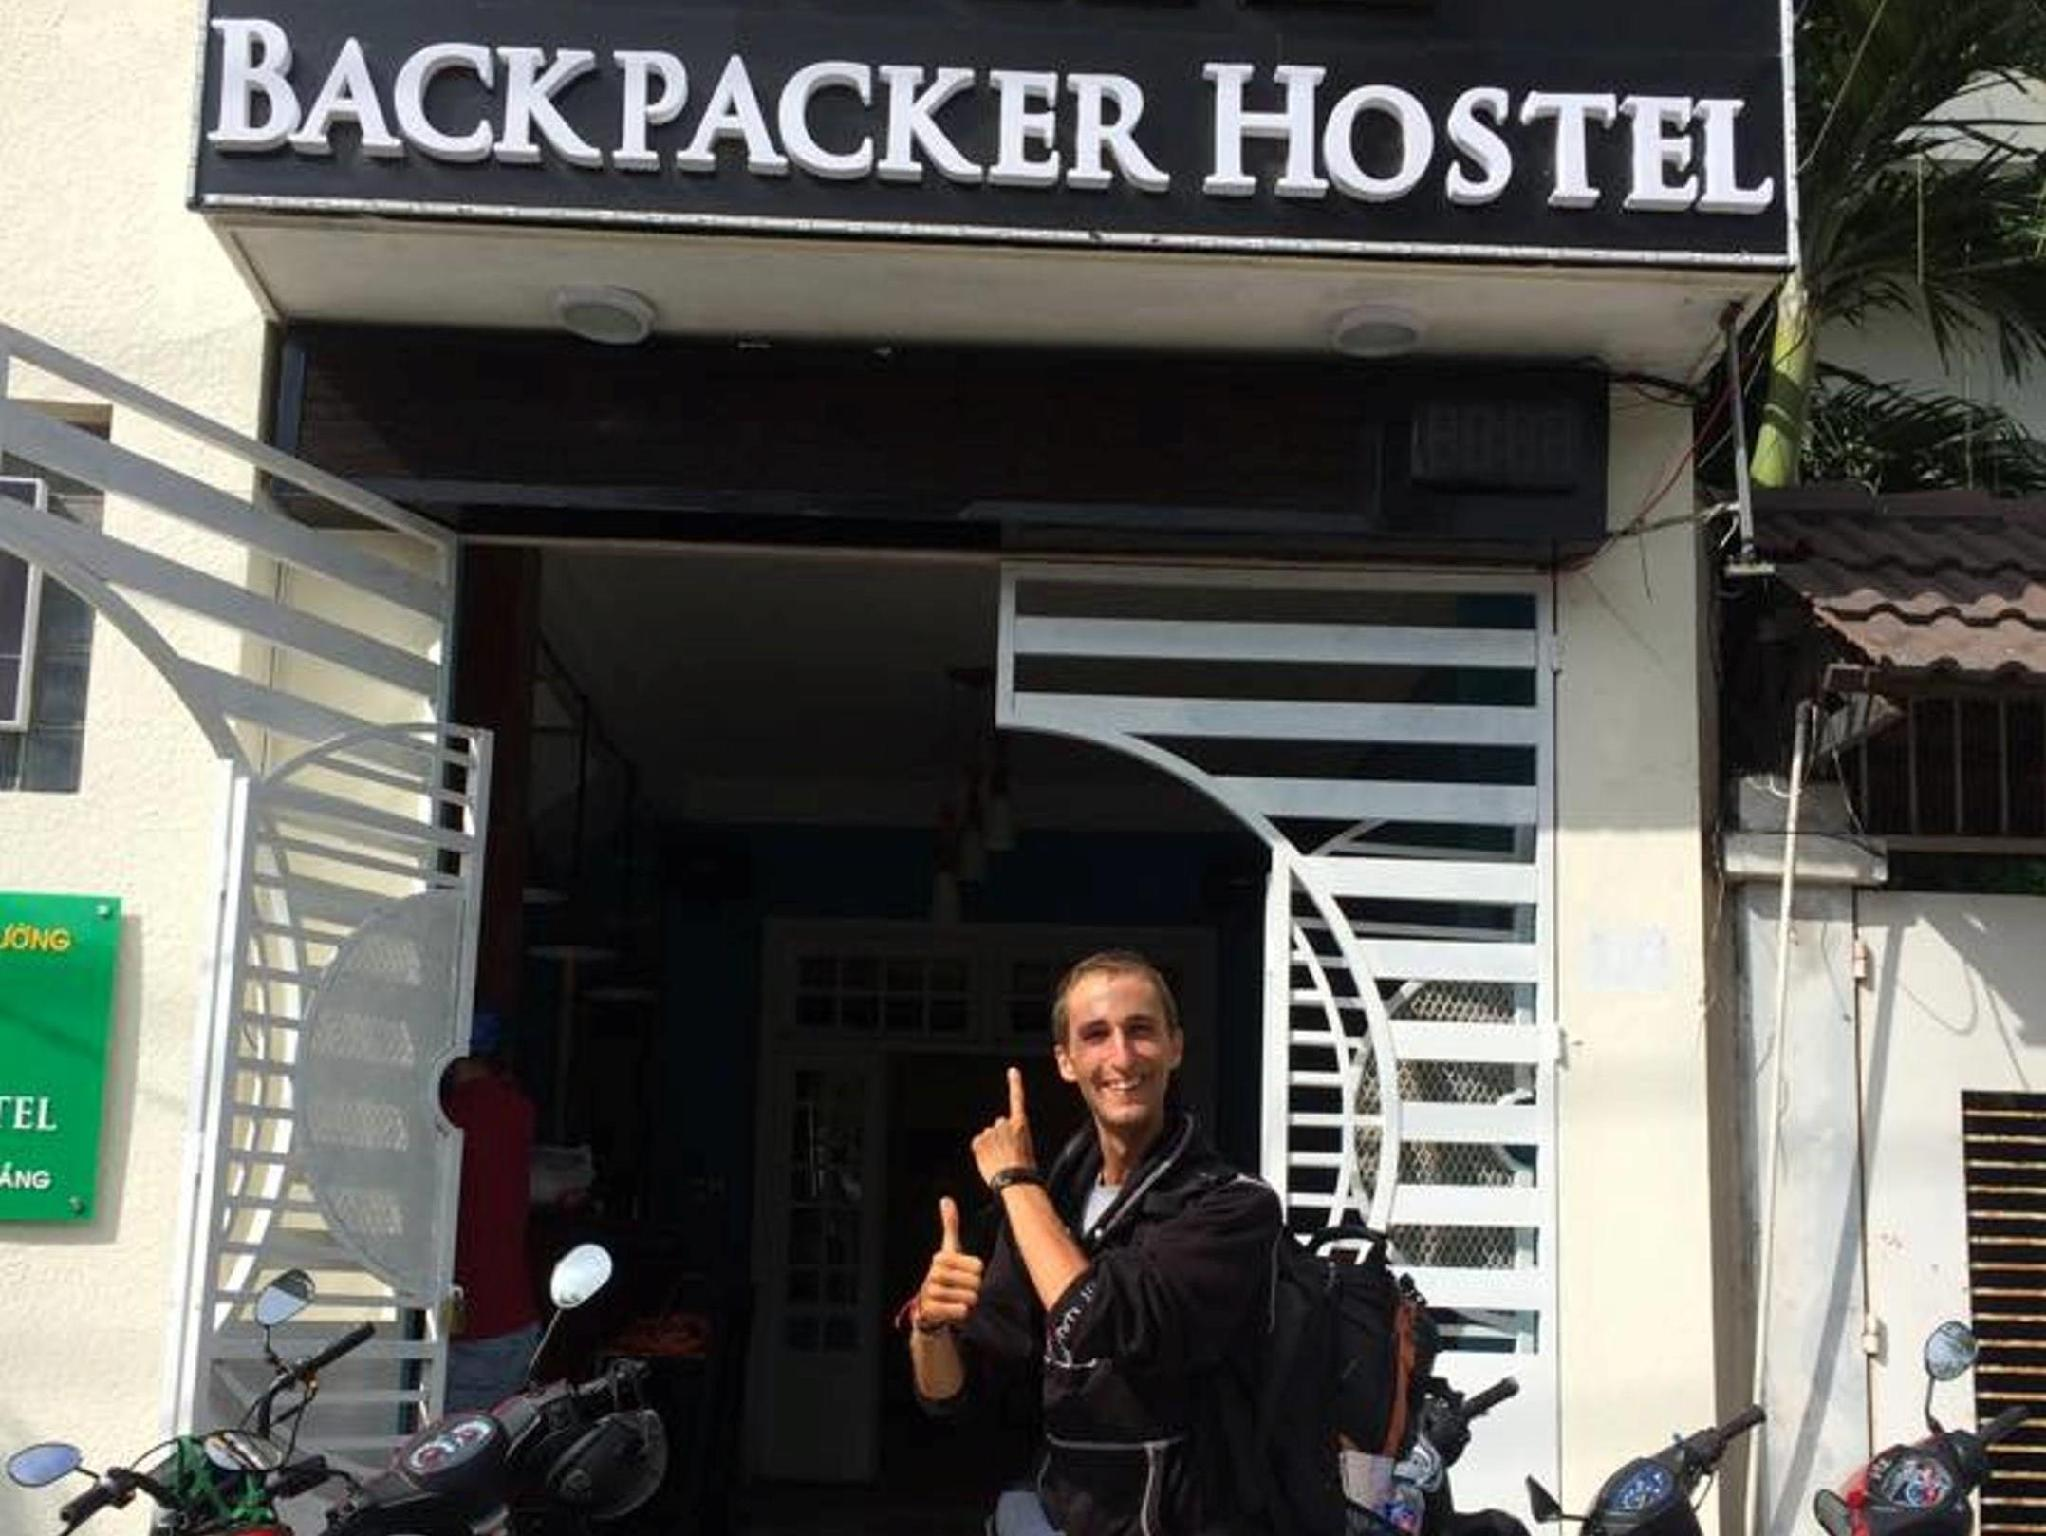 Like Backpacker Hostel7